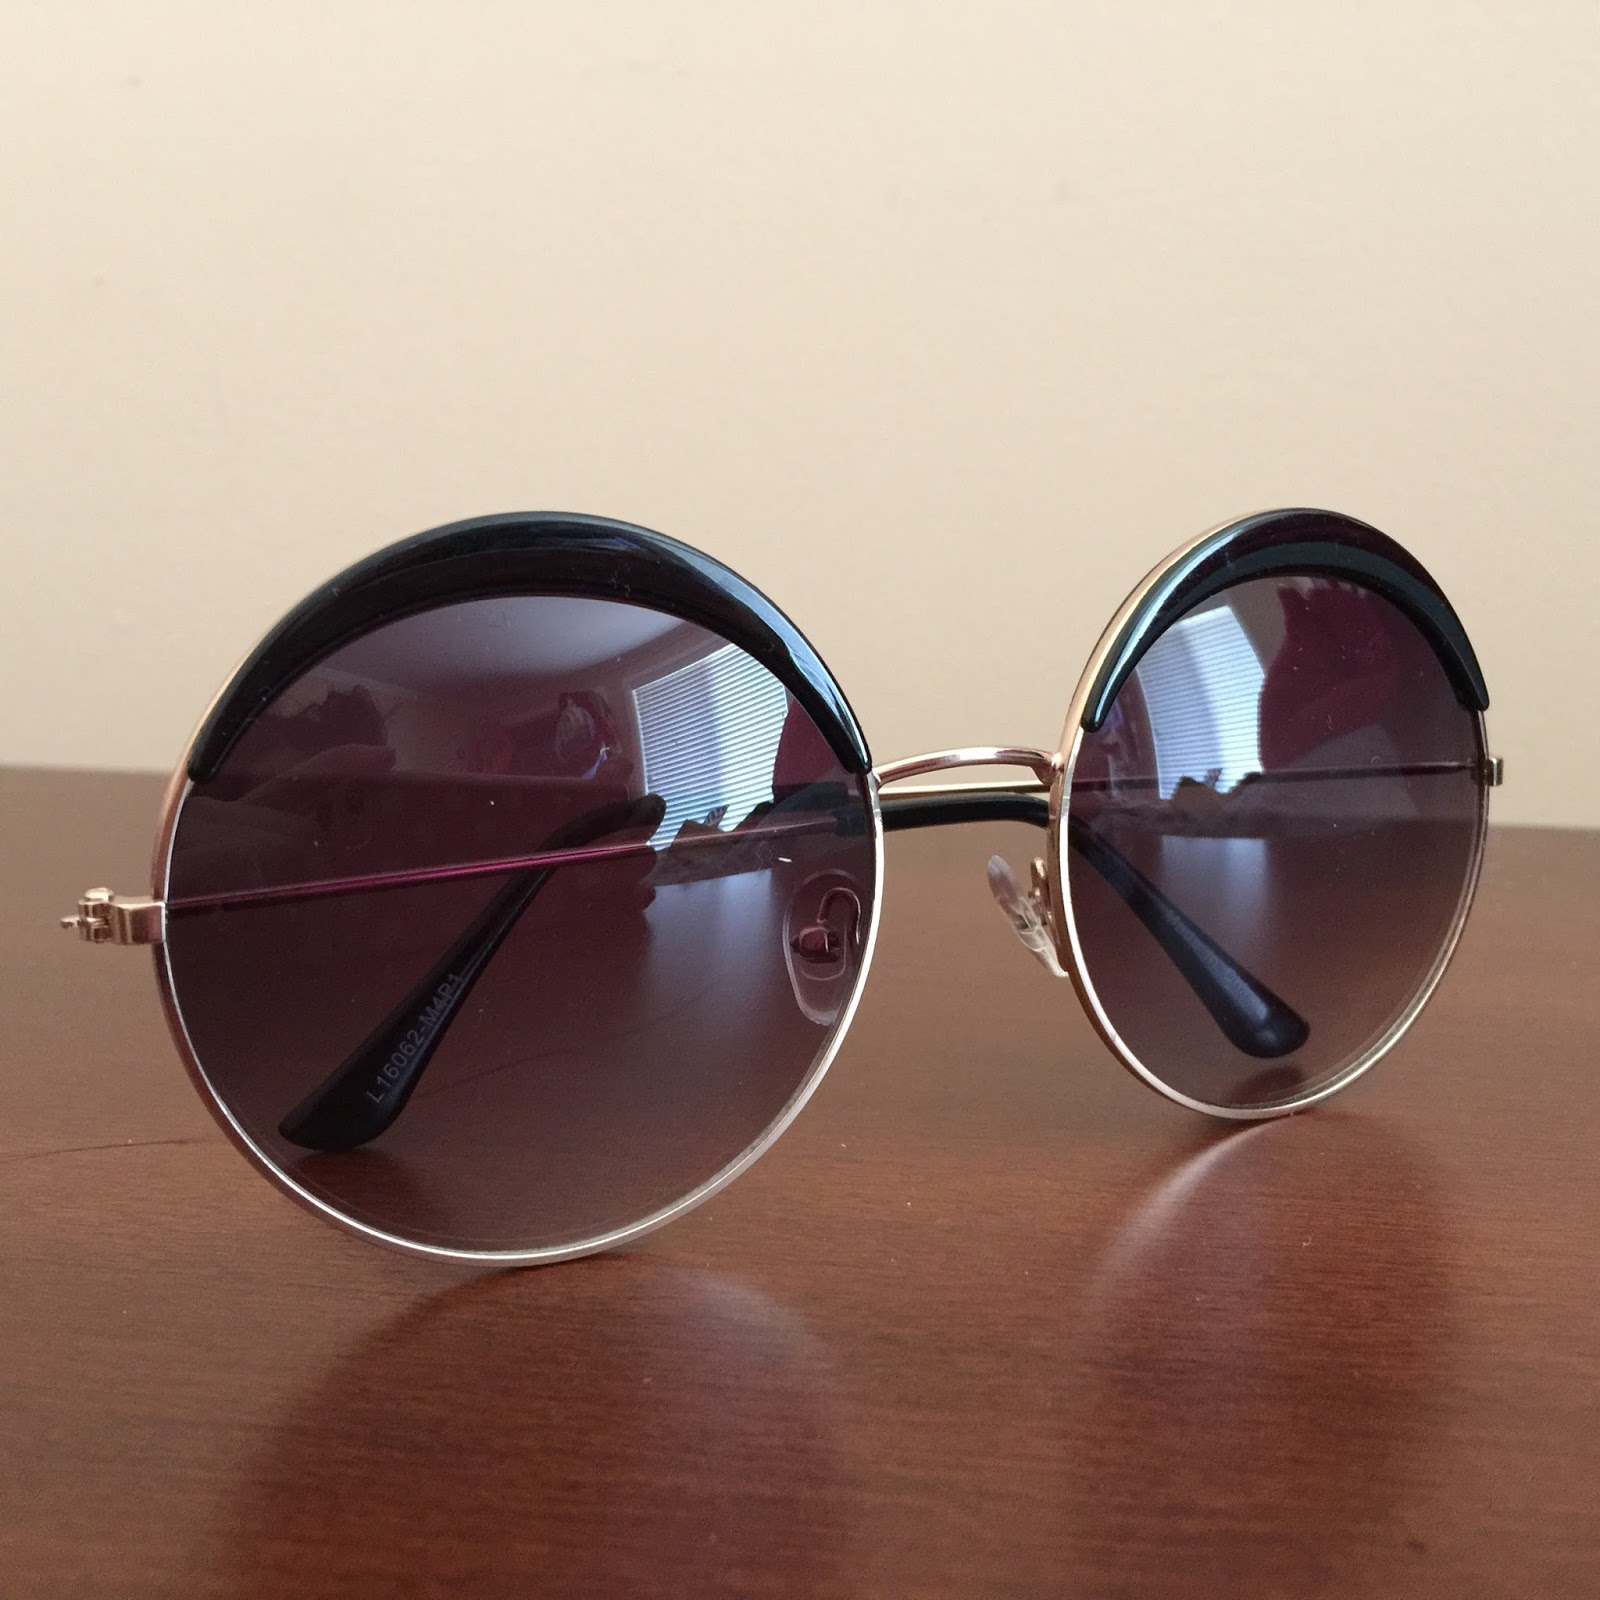 saint noir sunglasses, circle sunglasses, circle sunnies,